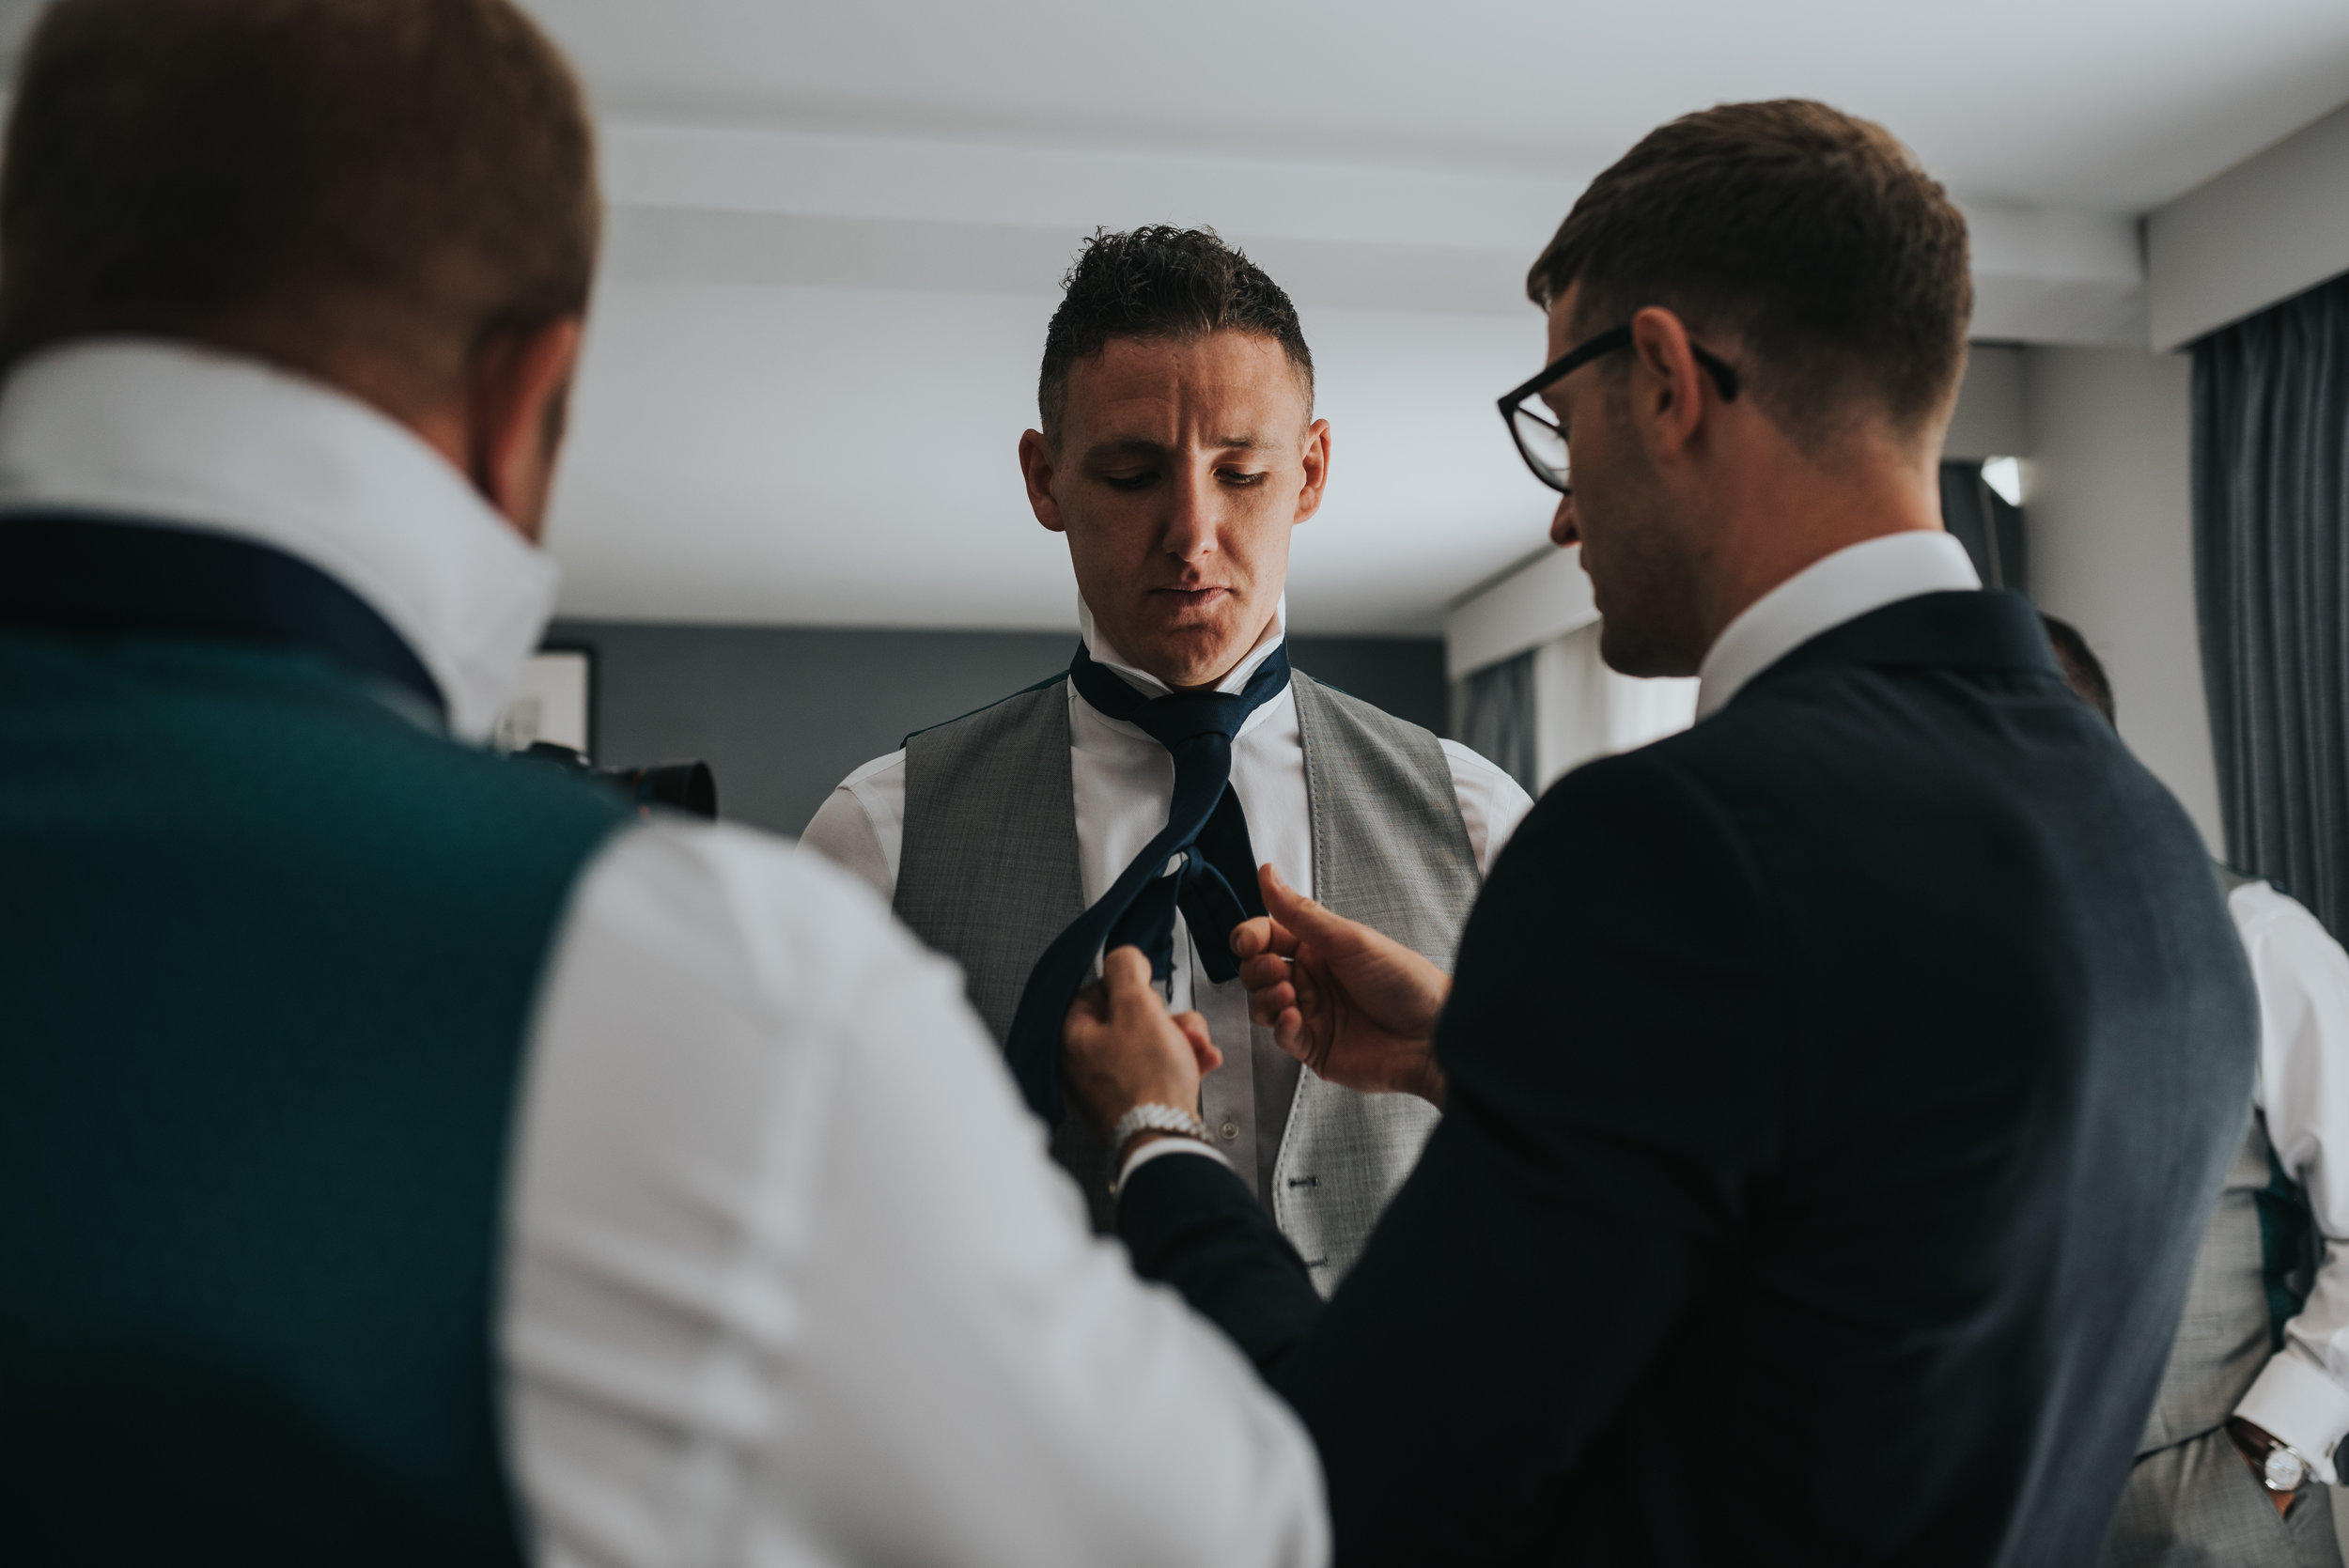 The groom fixes one of his groomsmen's ties.